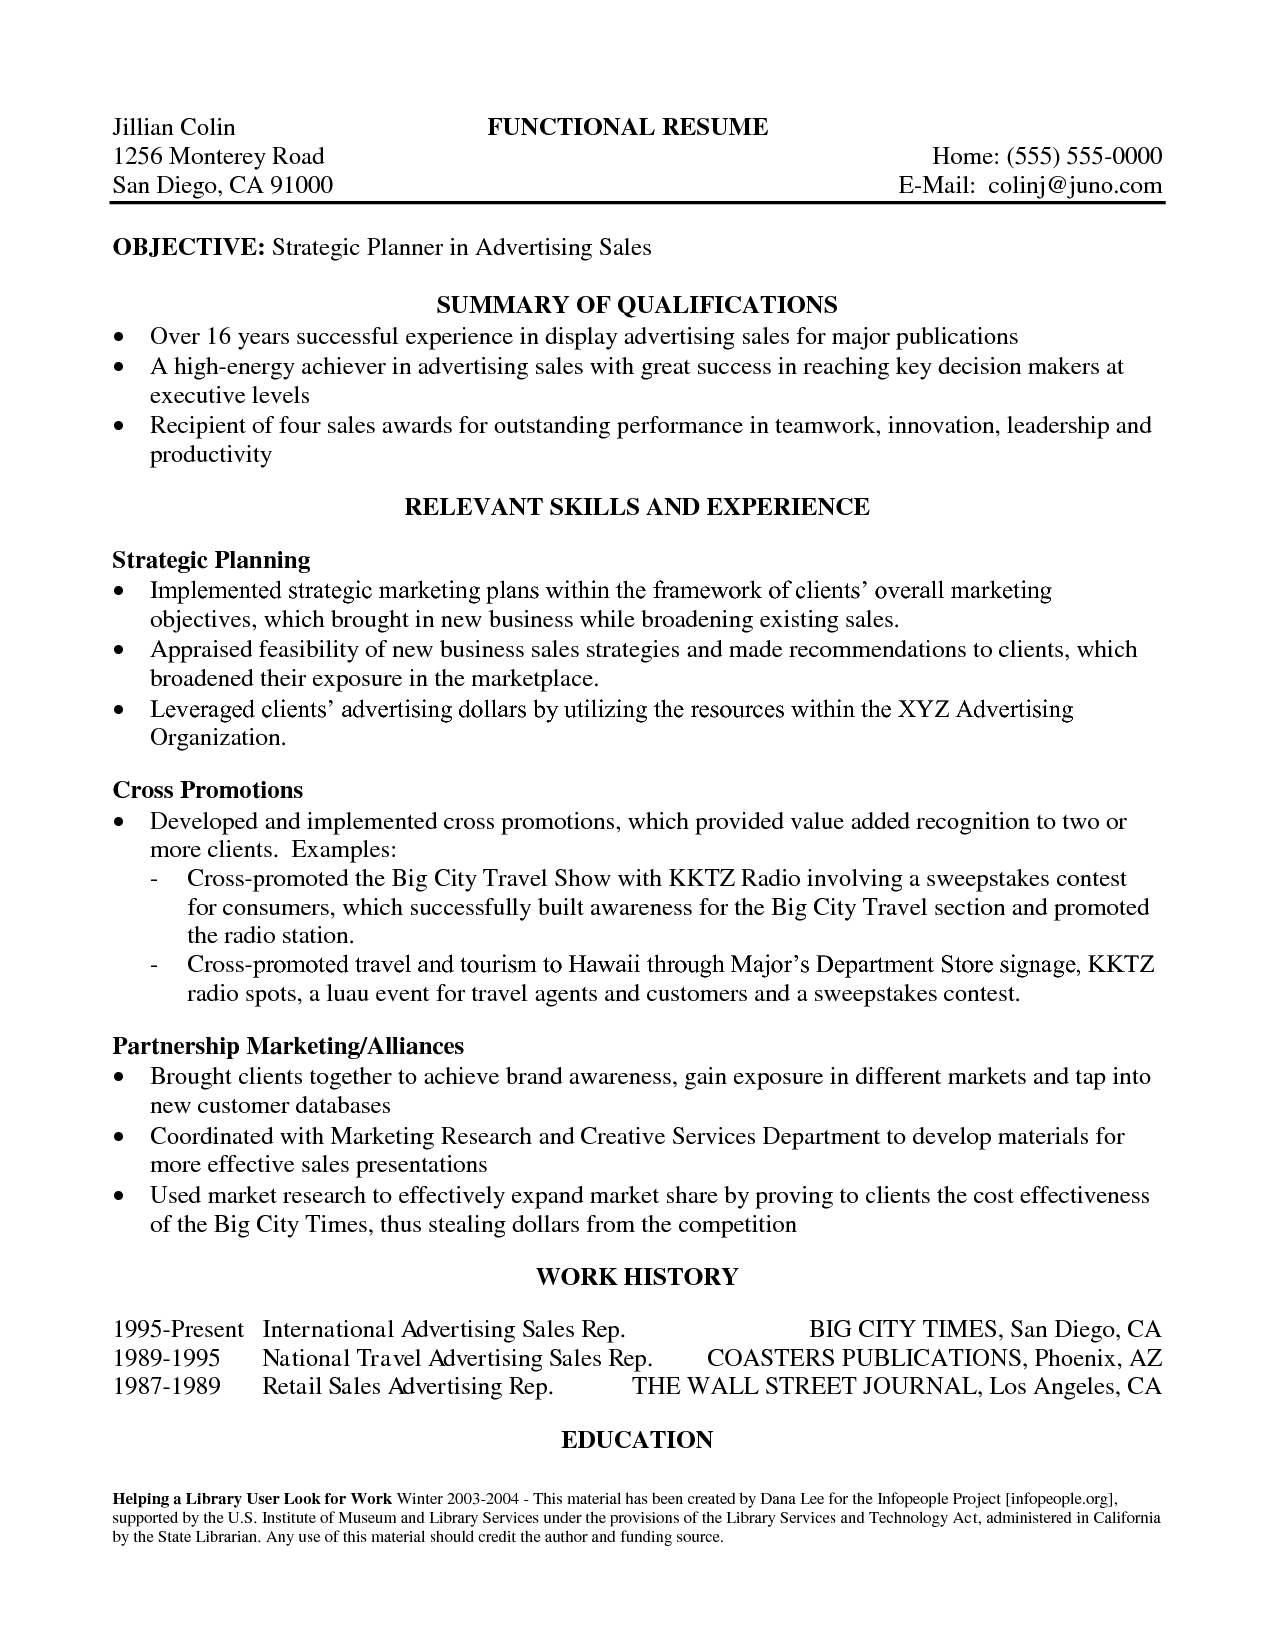 Resume Objective For Sales Resume Examples Summary  Resume Examples  Pinterest  Resume Examples